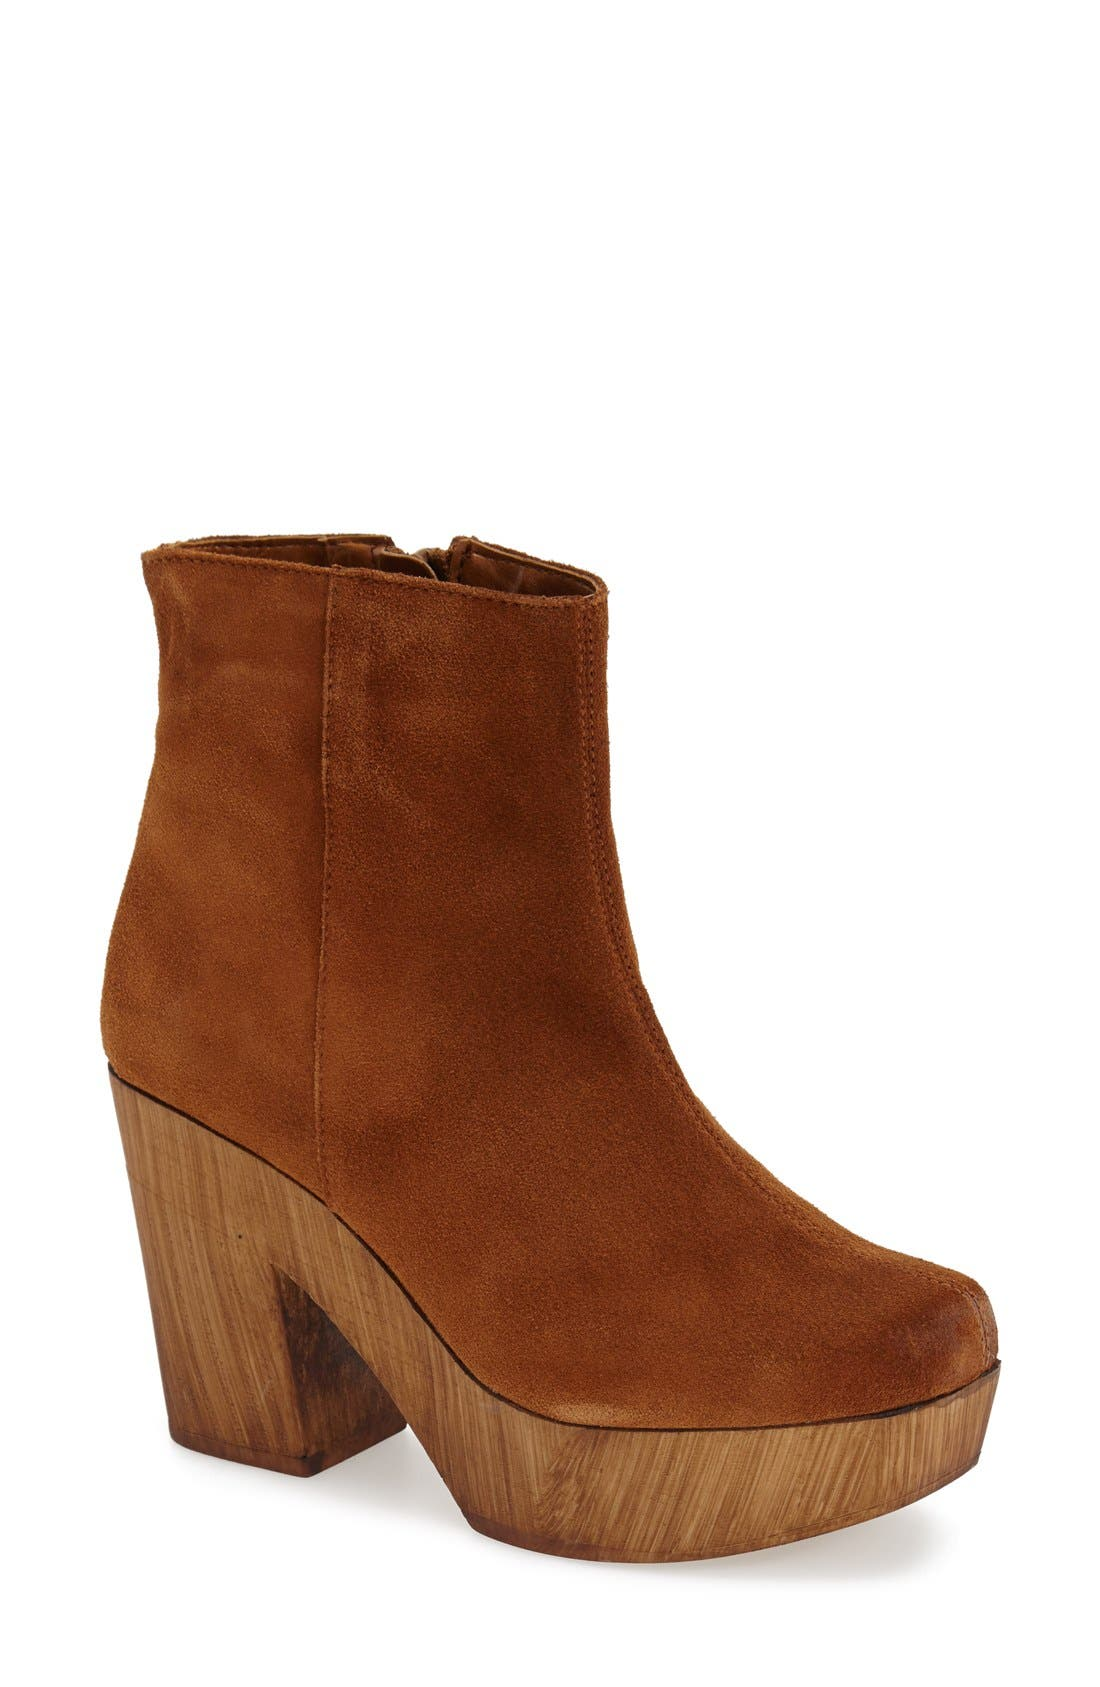 Main Image - Topshop 'Hitch' Platform Chelsea Boot (Women)